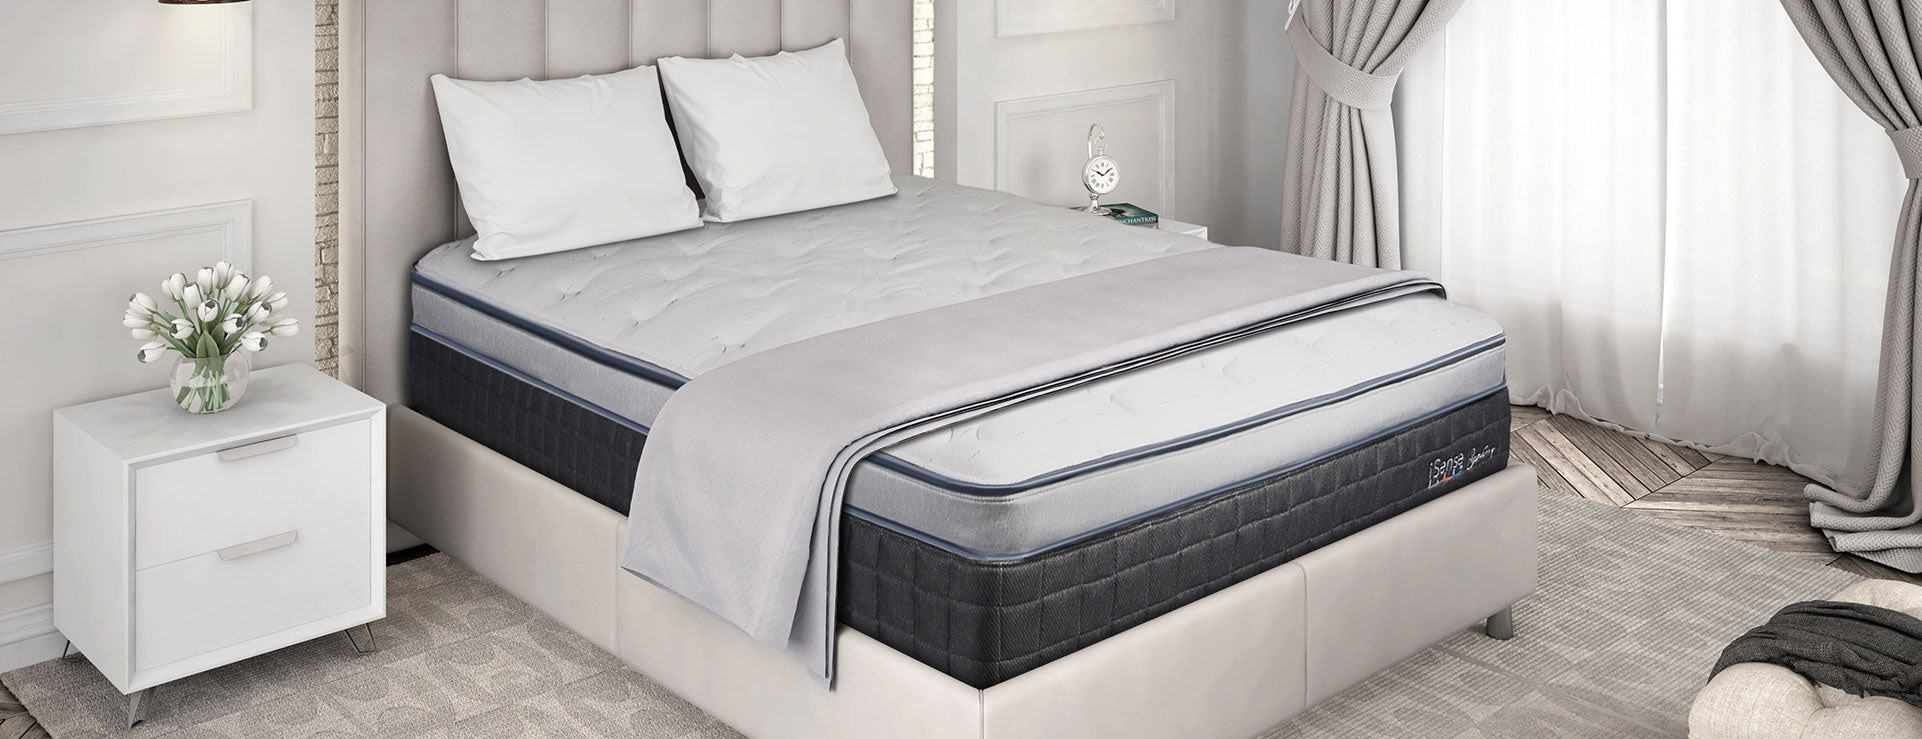 COMFORT CONTROL Spring Mattress - King Flex Head